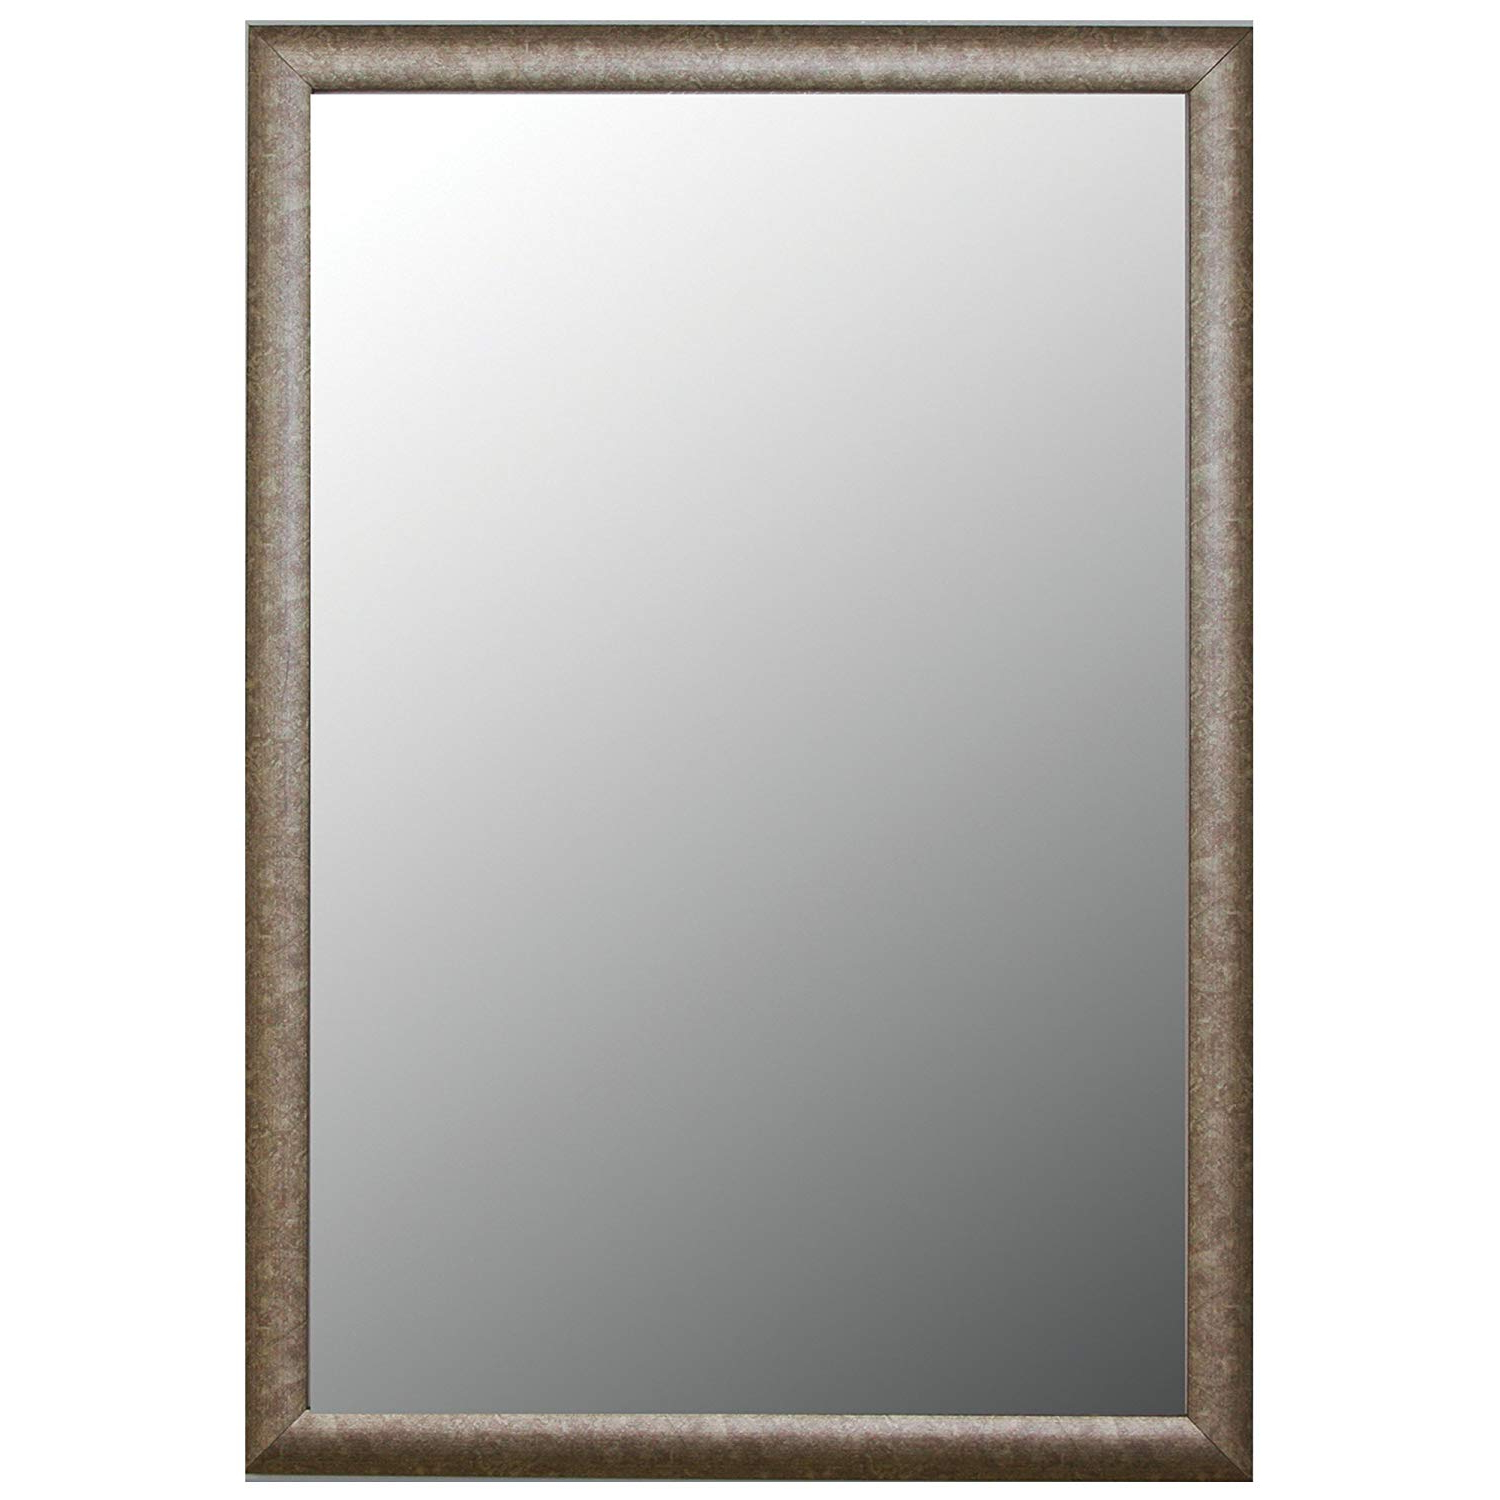 Favorite Silver Framed Wall Mirrors Inside Amazon: Second Look Mirrors Round Top Aged Silver Framed (View 7 of 20)